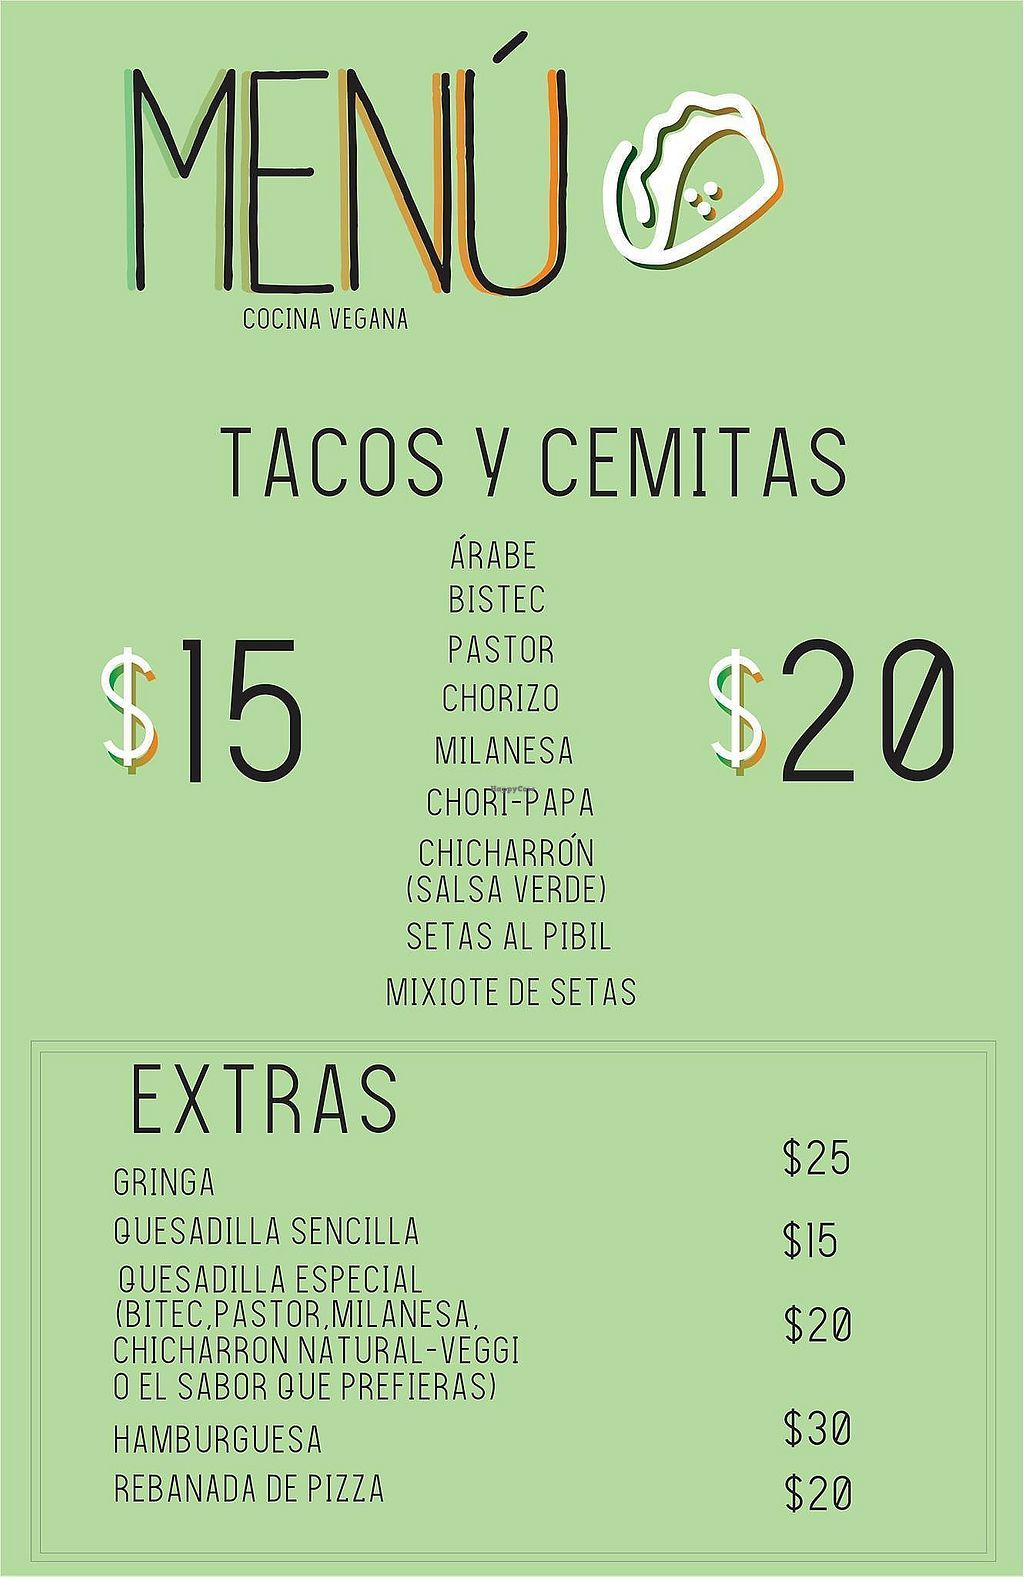 """Photo of Taco Station  by <a href=""""/members/profile/Caroly"""">Caroly</a> <br/>Menue <br/> March 1, 2018  - <a href='/contact/abuse/image/113356/365409'>Report</a>"""